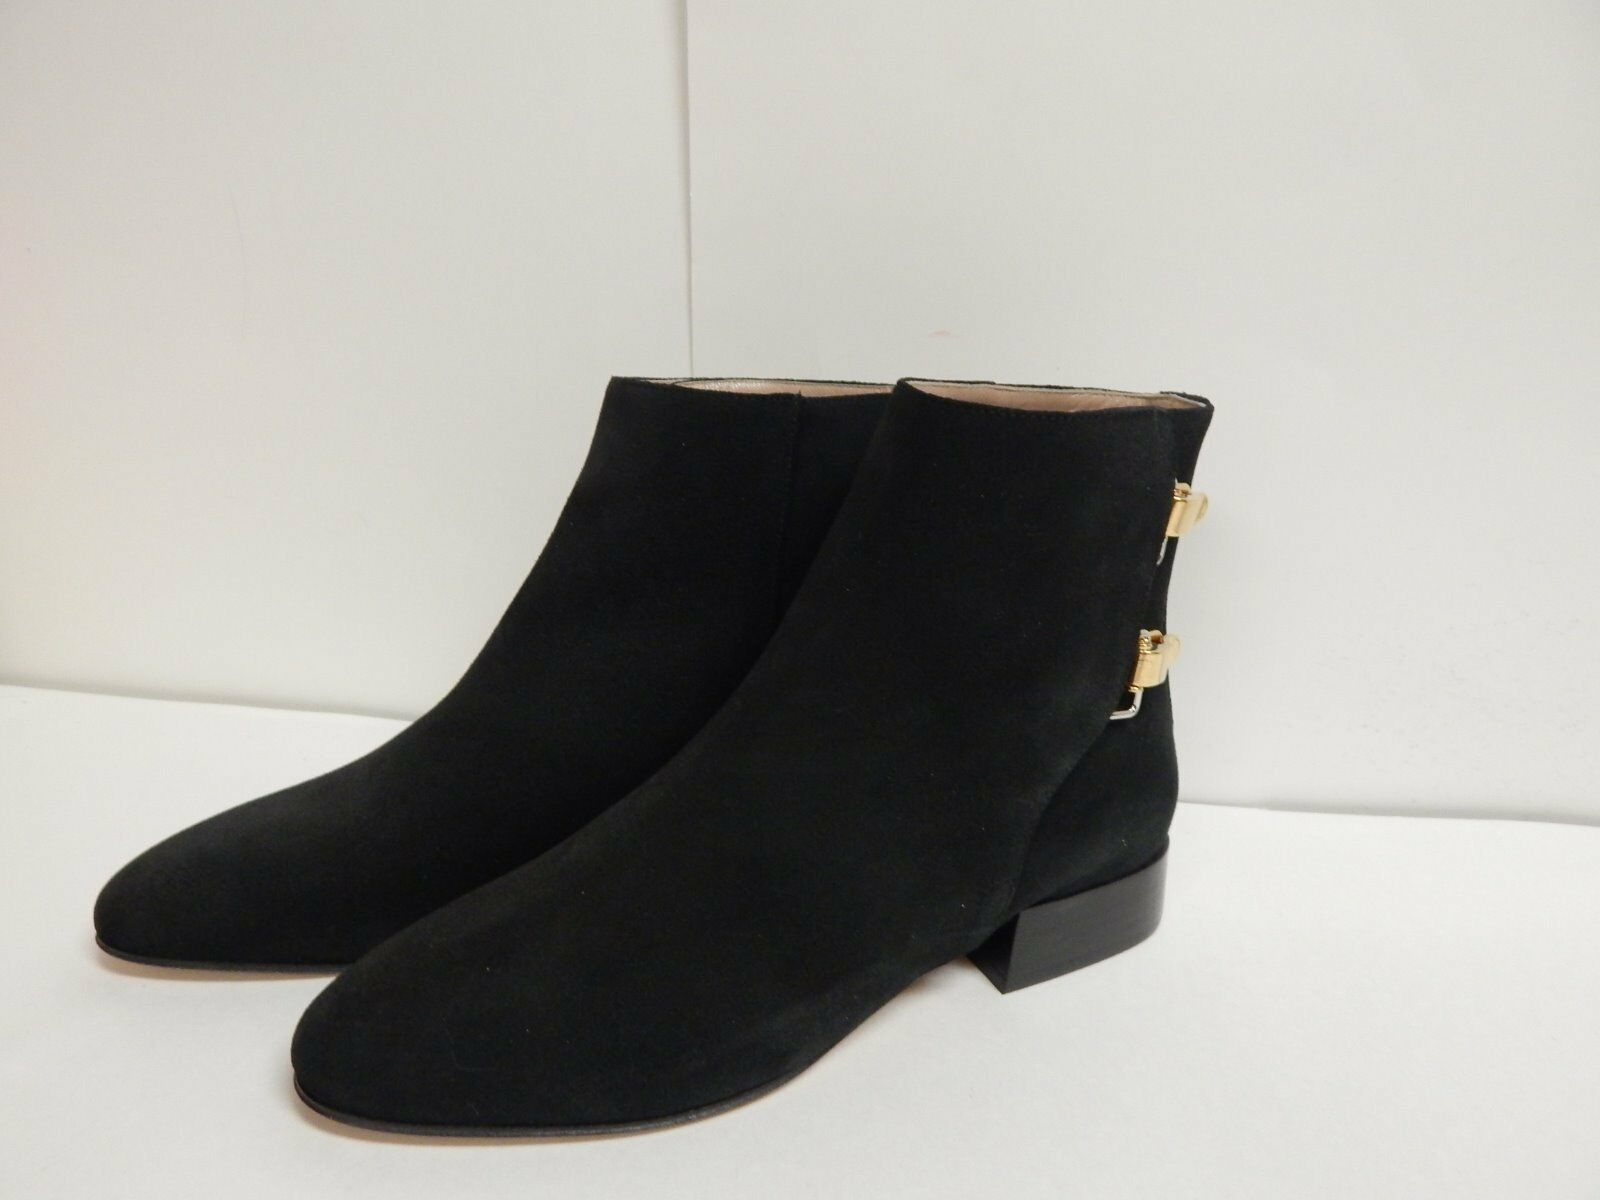 Chloe Double Buckle Ankle Boot AUTHENTIC  Black Suede  New with Box